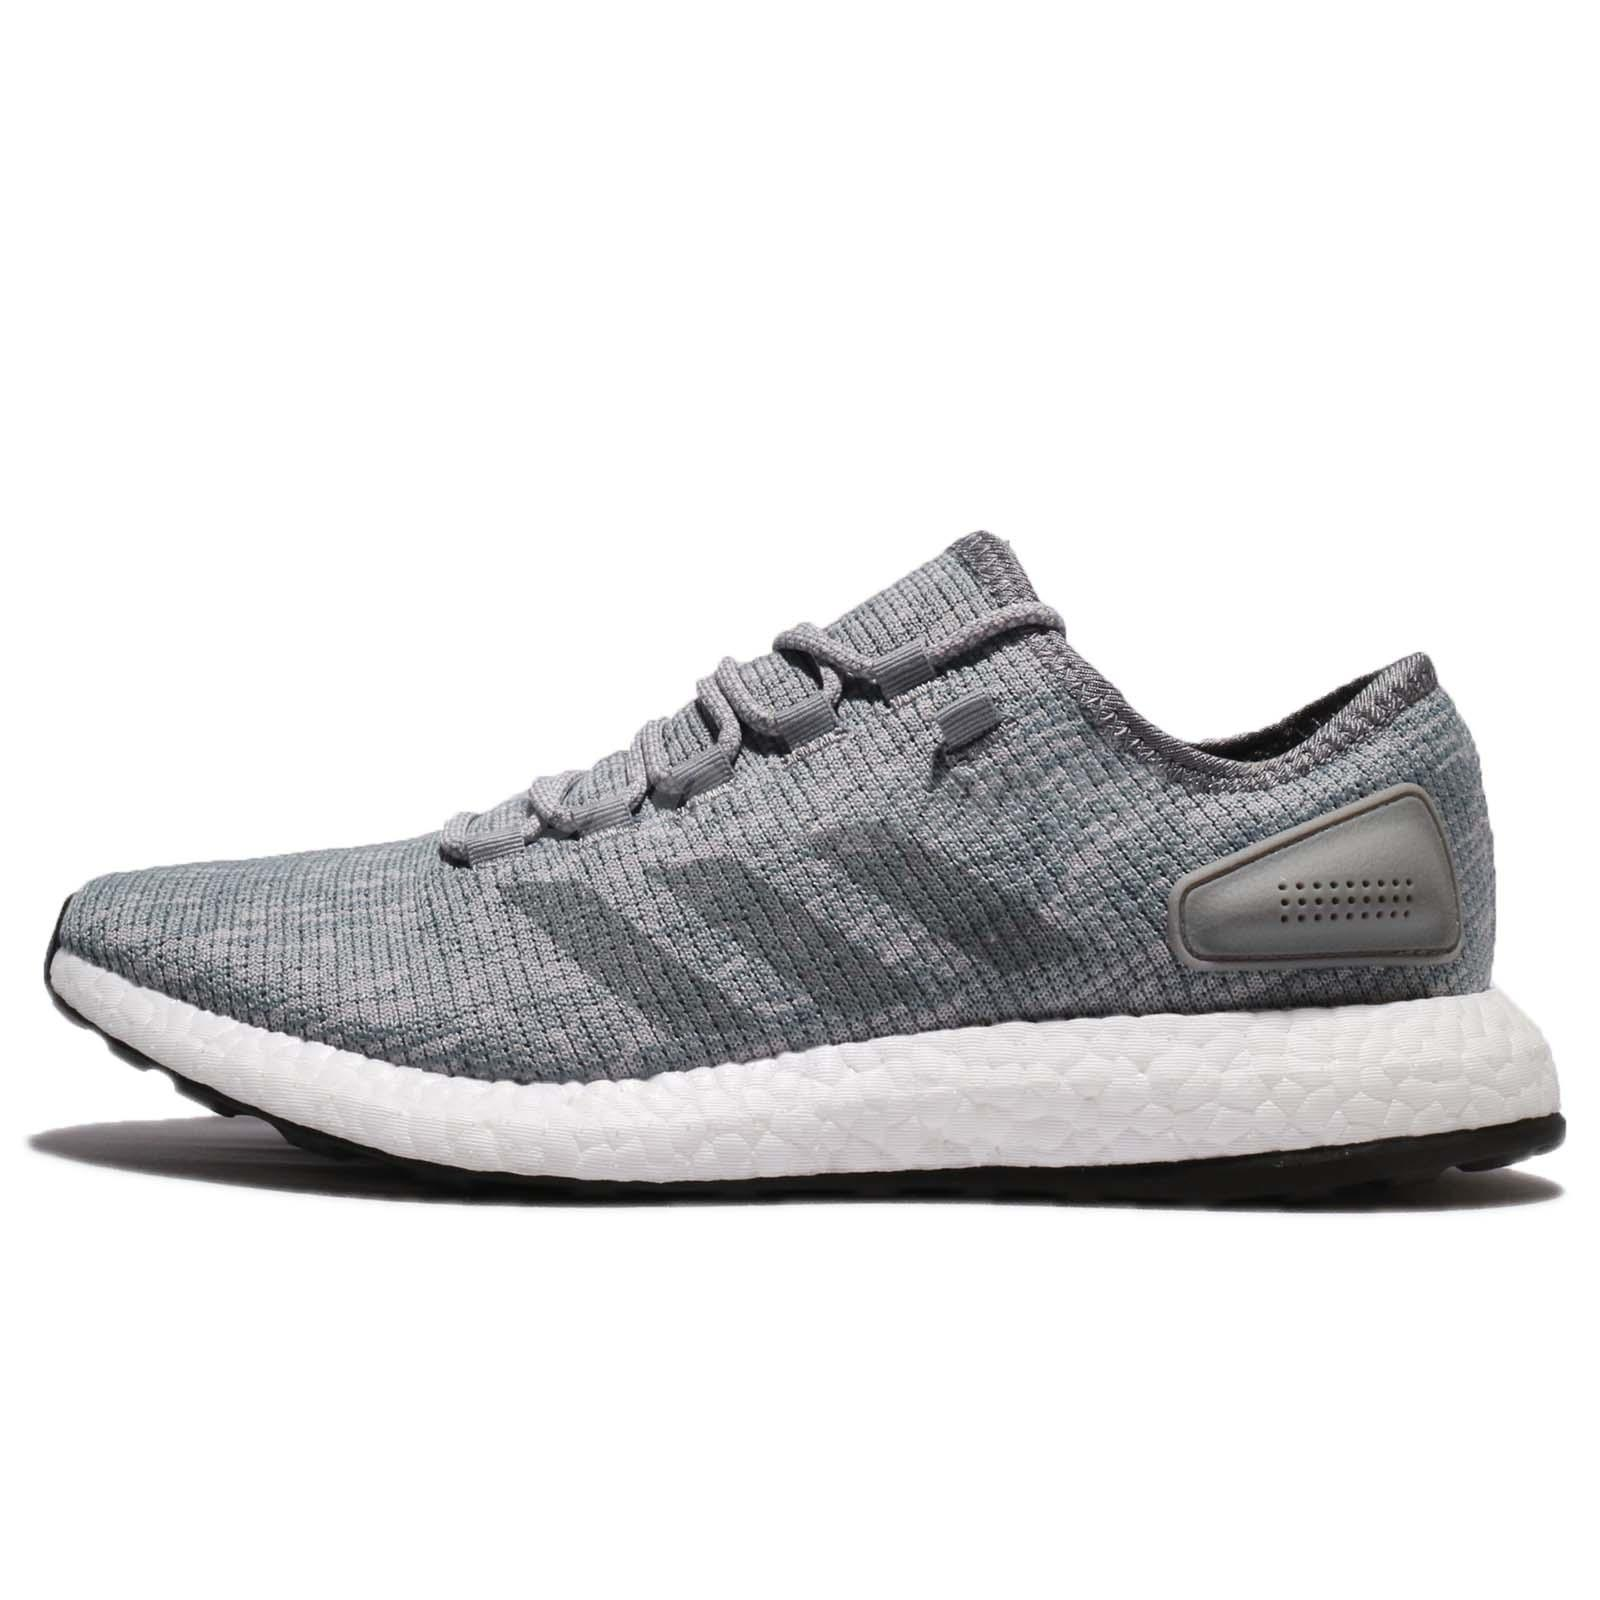 23e224b64 adidas PureBOOST Grey White Men Running Shoes Sneakers Trainers BB6278